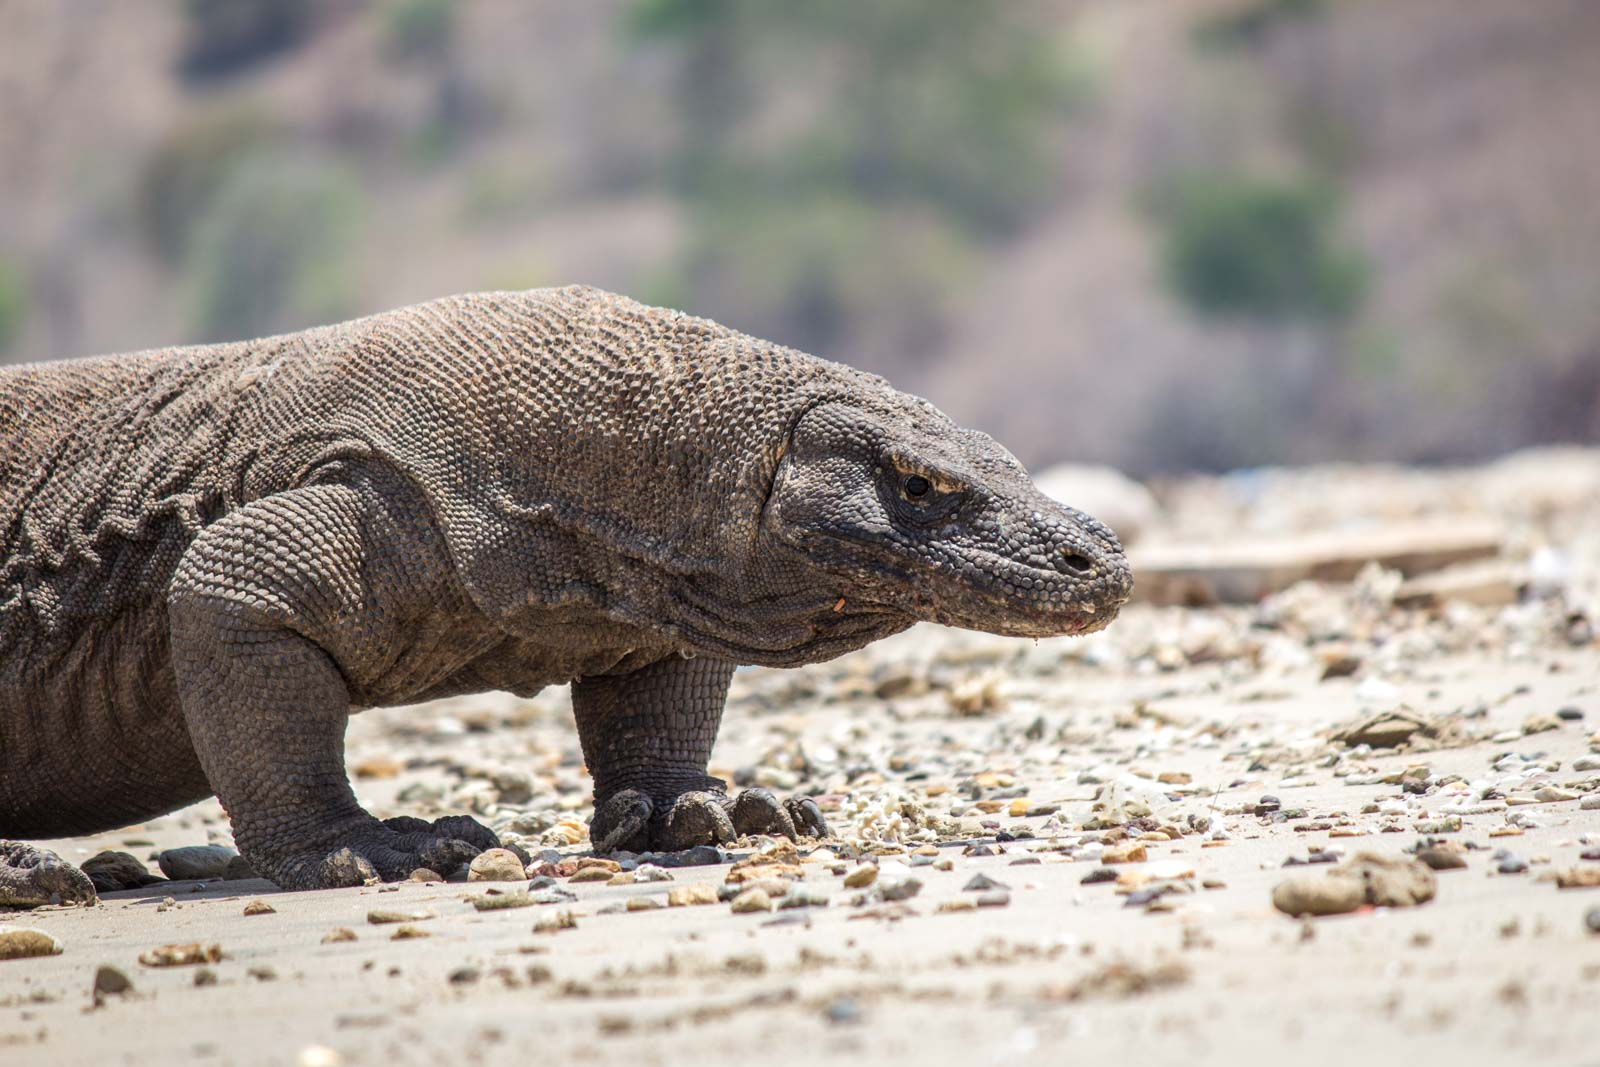 Seeing the Komodo Dragons at Komodo Island National Park, Indonesia